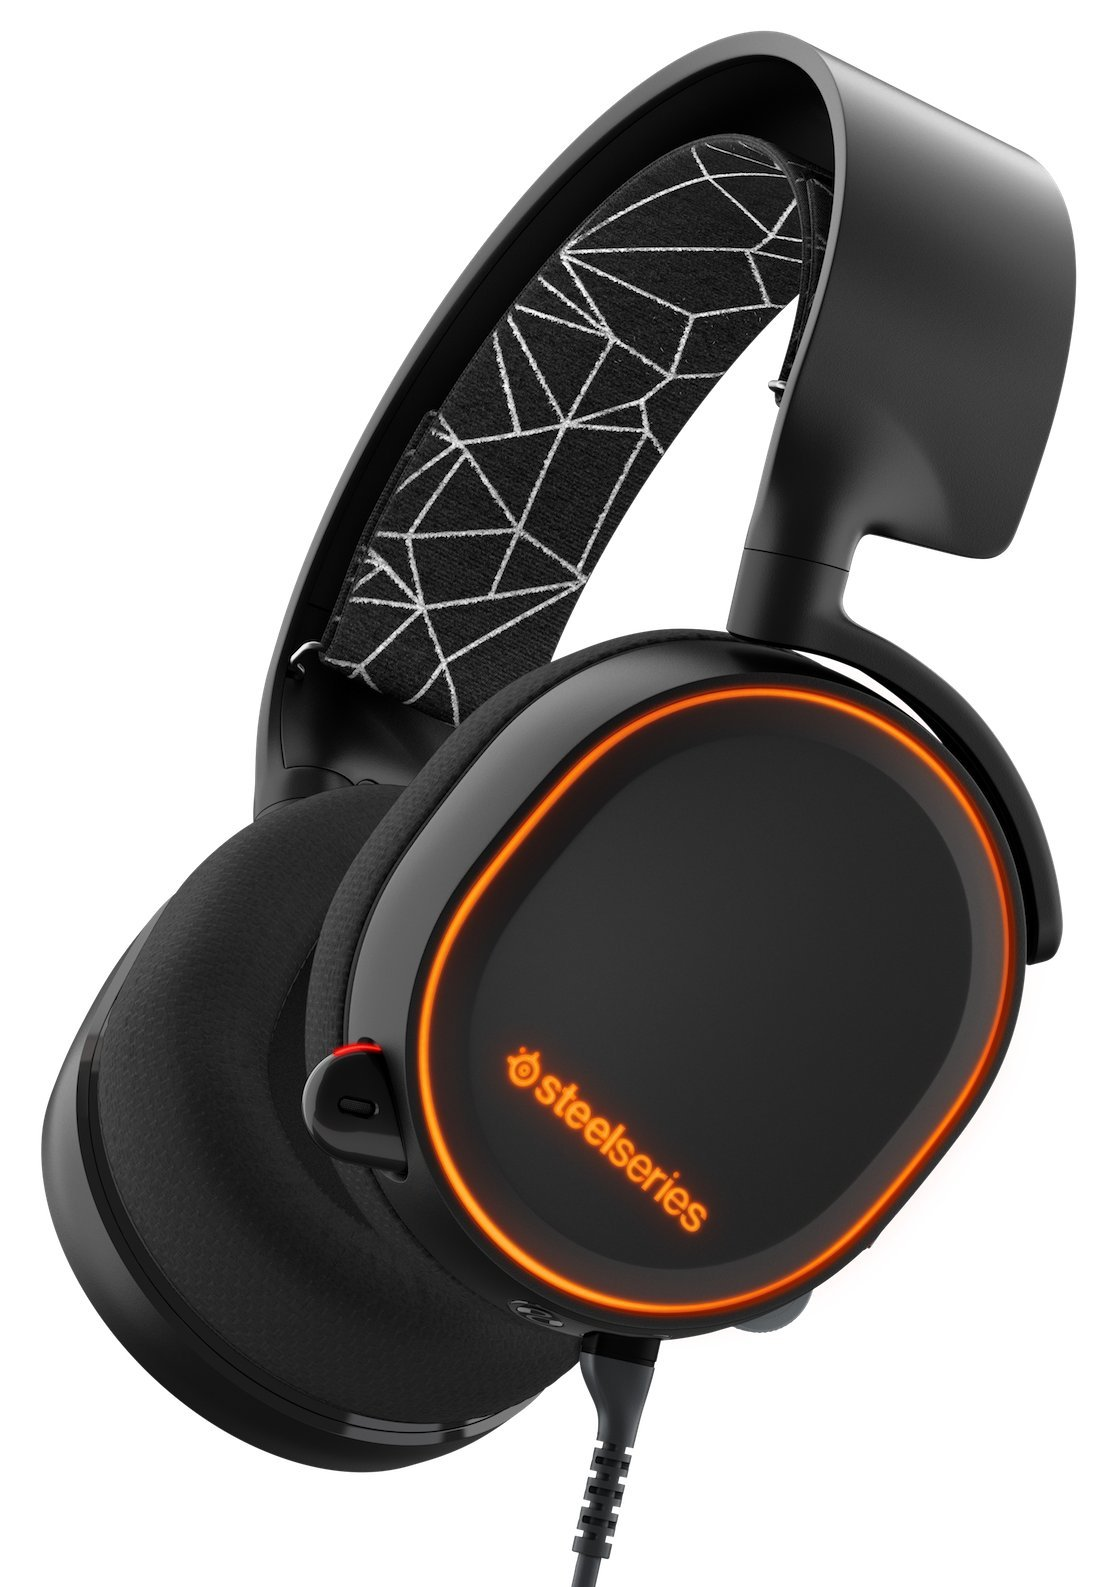 Buy Logitech G430 7 1 DTS Headphone: X and Dolby Surround Sound